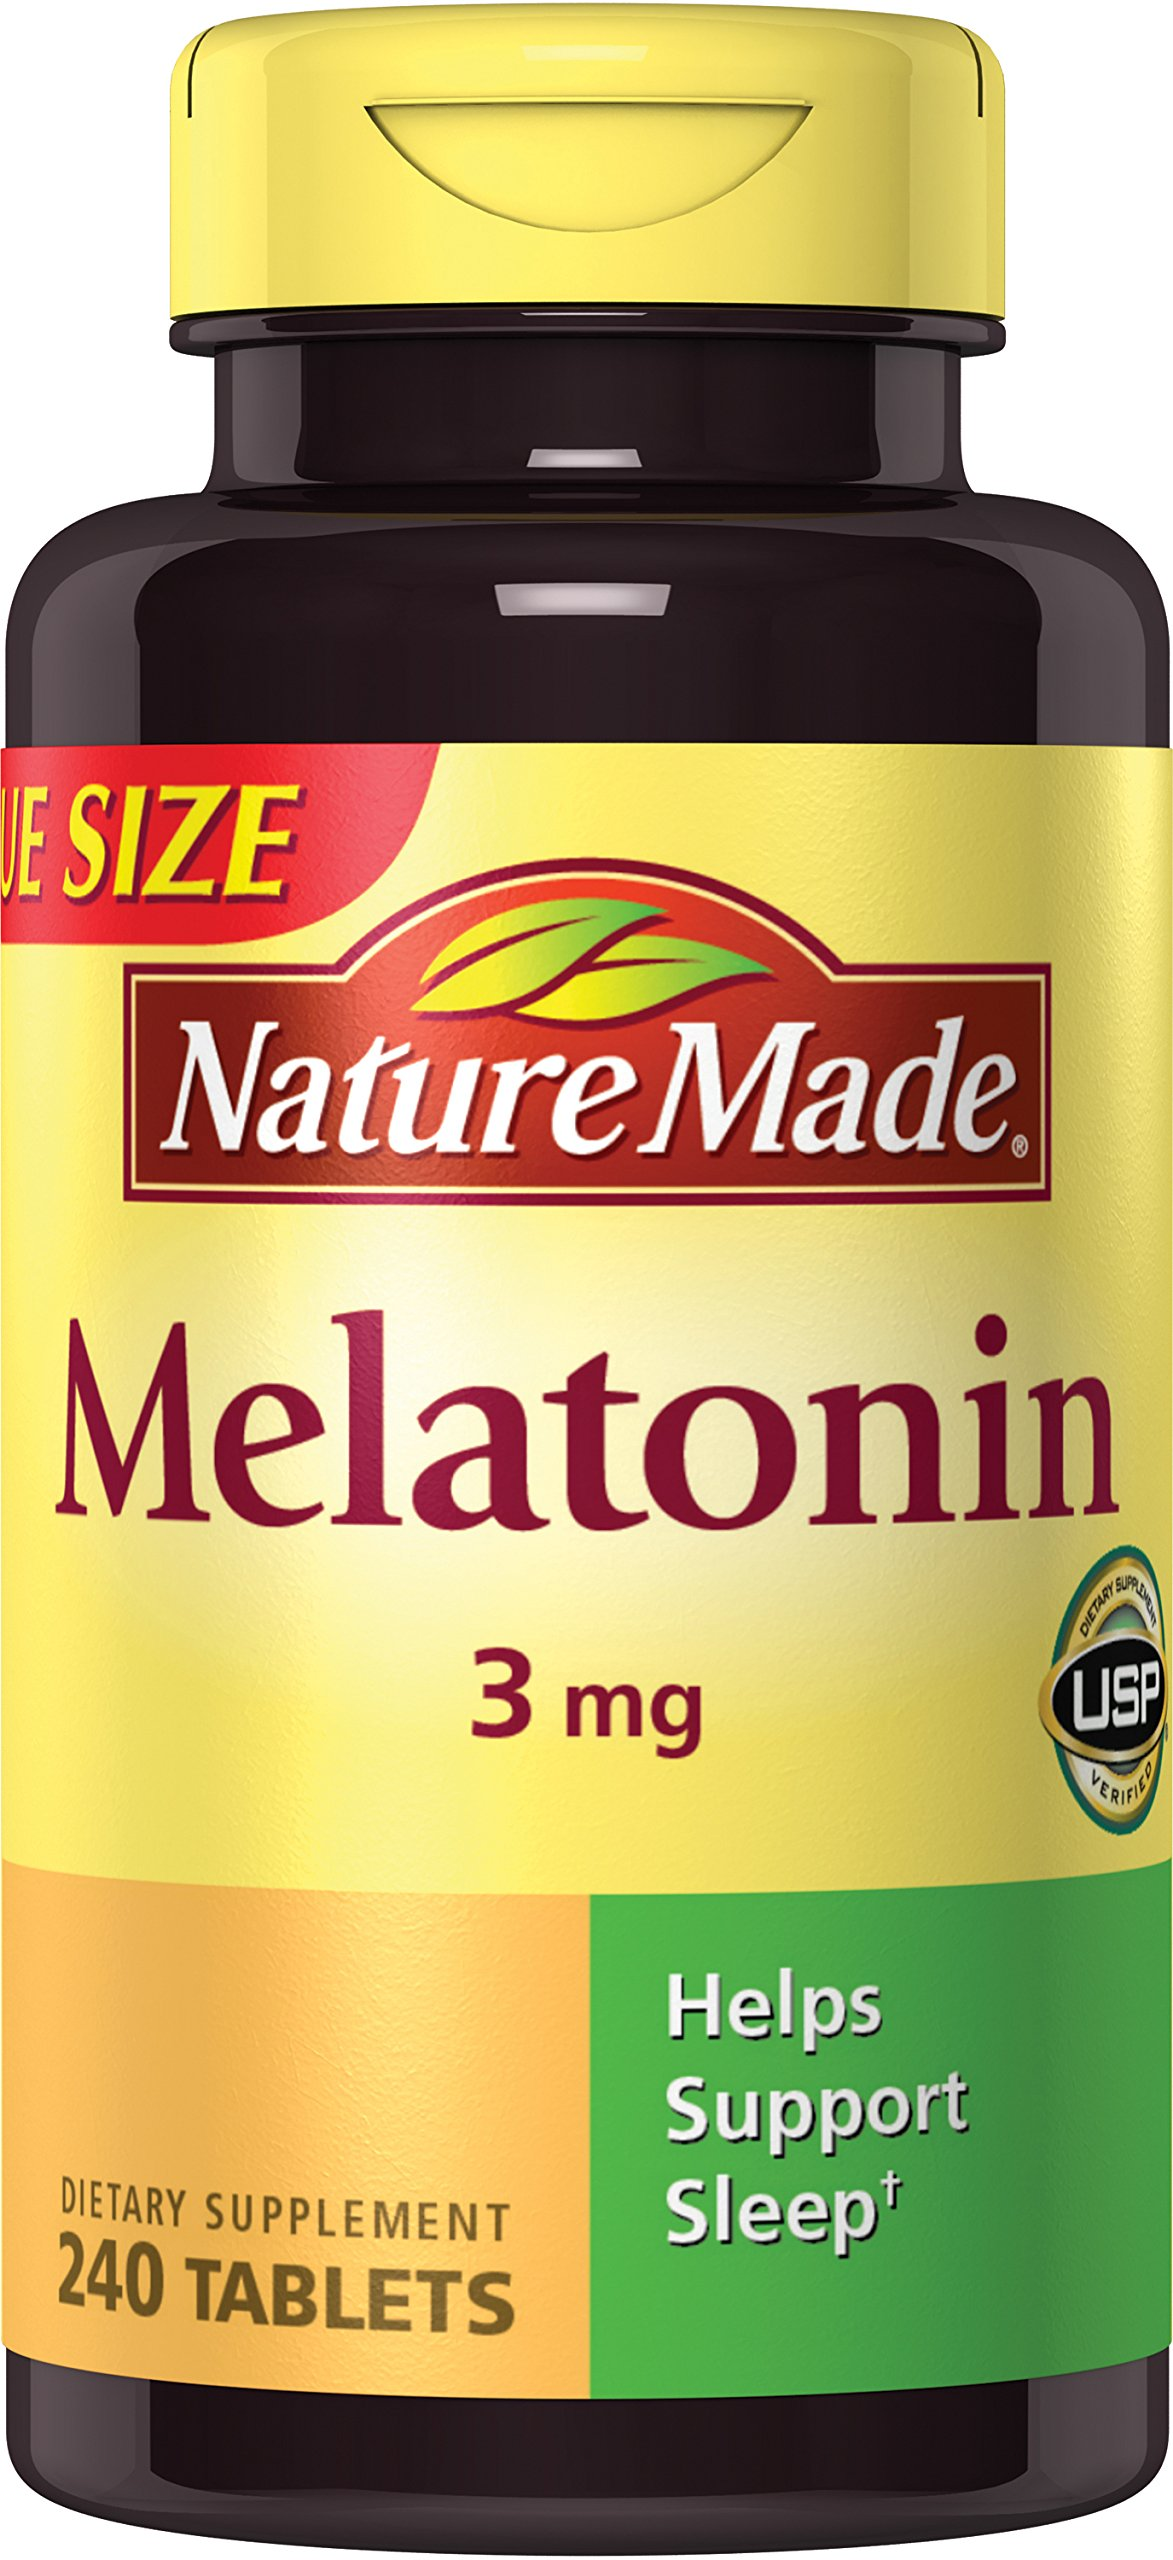 Nature Made Melatonin 3 mg Tablets Value Size 240 Ct product image